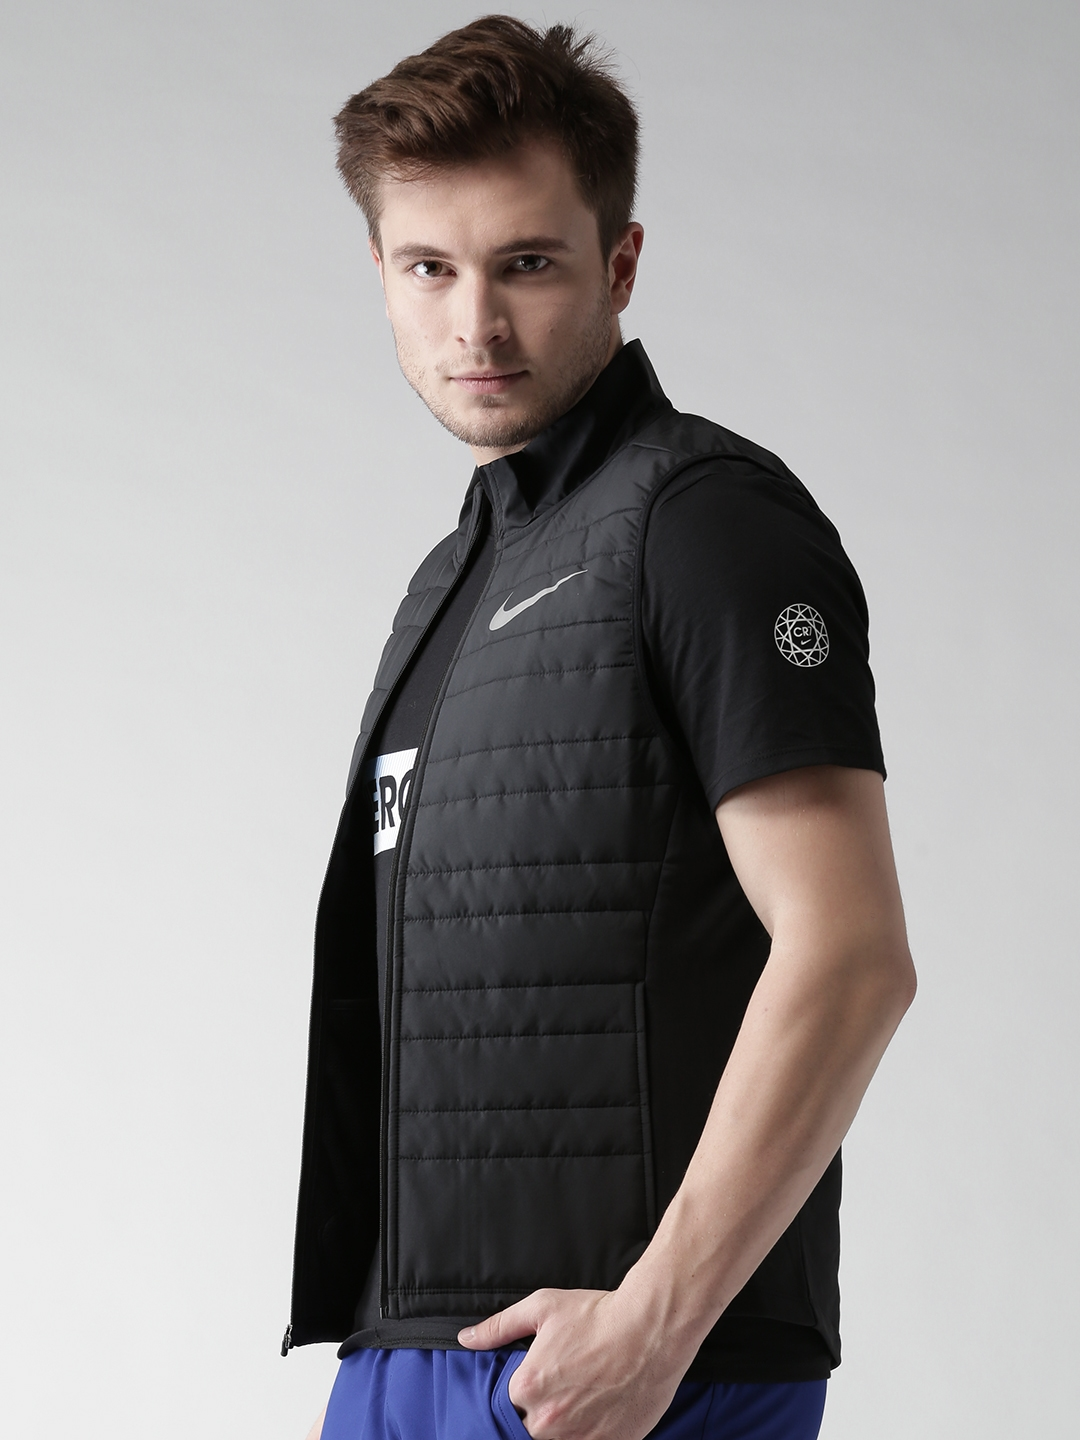 a20dc9d4228b8 Buy Nike Men Black AS FIlled Essential Solid Sleeveless Insulator ...